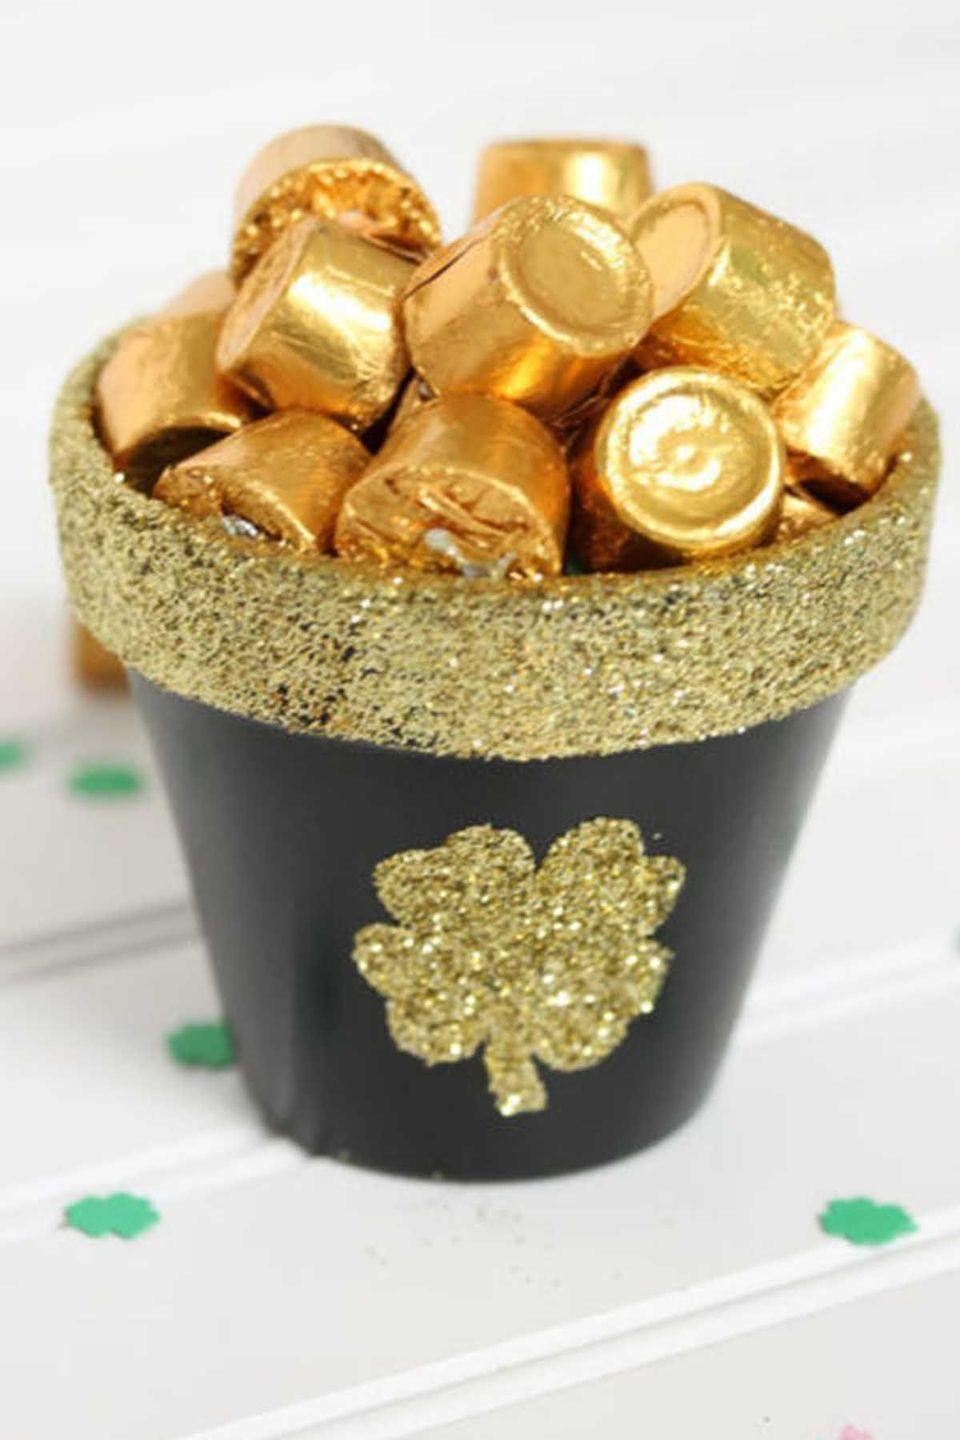 """<p>What's better than a pot of gold you can eat? Filled with candy, here's how to turn an ordinary <a href=""""https://www.womansday.com/home/decorating/a8709/best-flowers-for-spring-house-beautiful/"""" rel=""""nofollow noopener"""" target=""""_blank"""" data-ylk=""""slk:flower pot"""" class=""""link rapid-noclick-resp"""">flower pot</a> into the perfect seasonal craft.</p><p><em>Get the tutorial at <a href=""""http://www.the36thavenue.com/st-patricks-day-pot-of-gold/"""" rel=""""nofollow noopener"""" target=""""_blank"""" data-ylk=""""slk:The 36th Avenue"""" class=""""link rapid-noclick-resp"""">The 36th Avenue</a>.</em> </p>"""